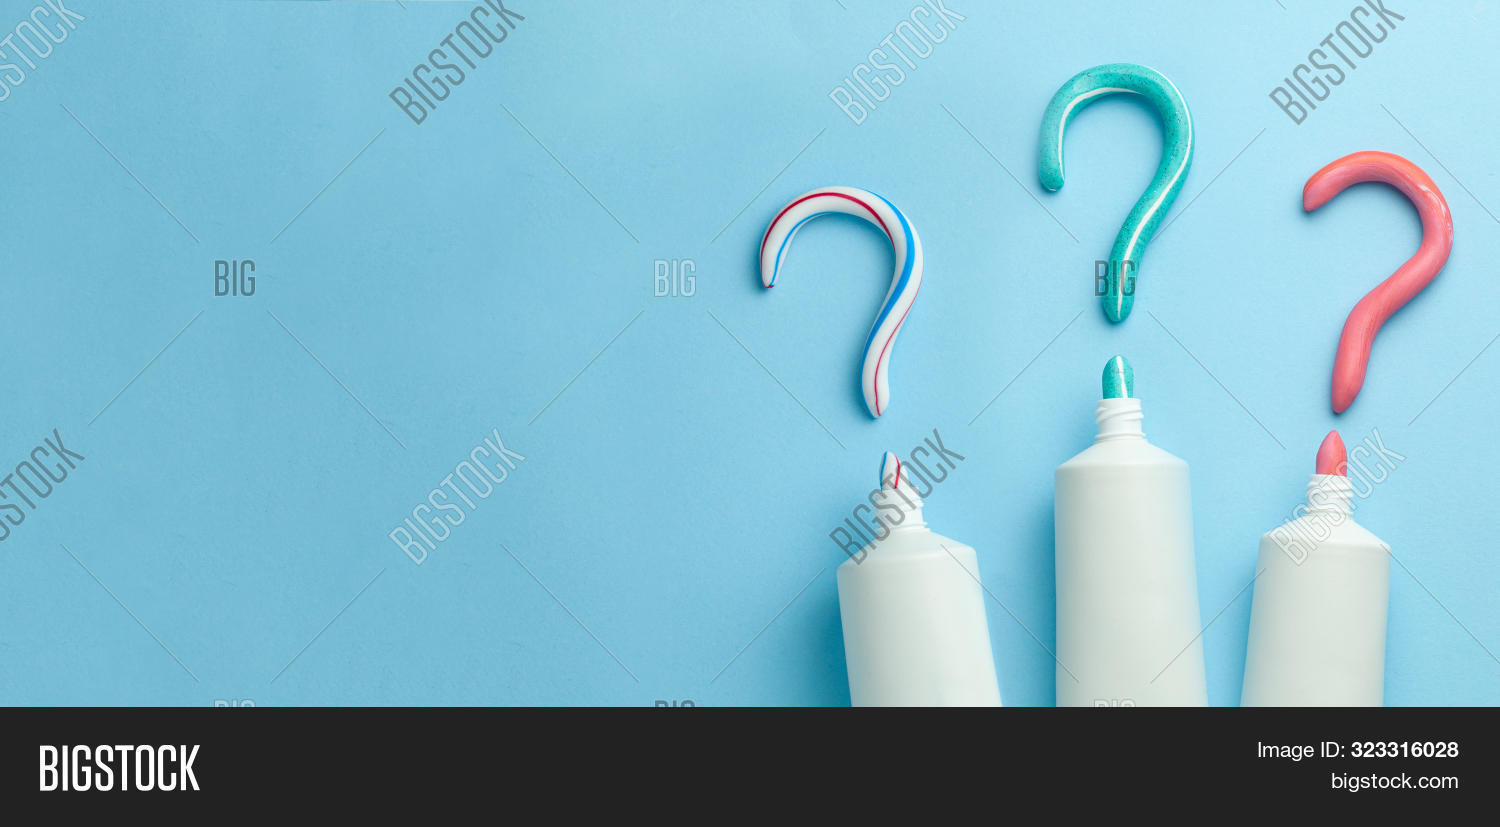 Question,bathroom,beauty,blue,brush,care,choosing,clean,dental,dentist,dentistry,equipment,fresh,health,healthcare,healthy,hygiene,mark,medical,medicine,morning,mouth,object,oral,paste,plastic,protection,tooth,toothbrush,toothpaste,tube,white,whitening